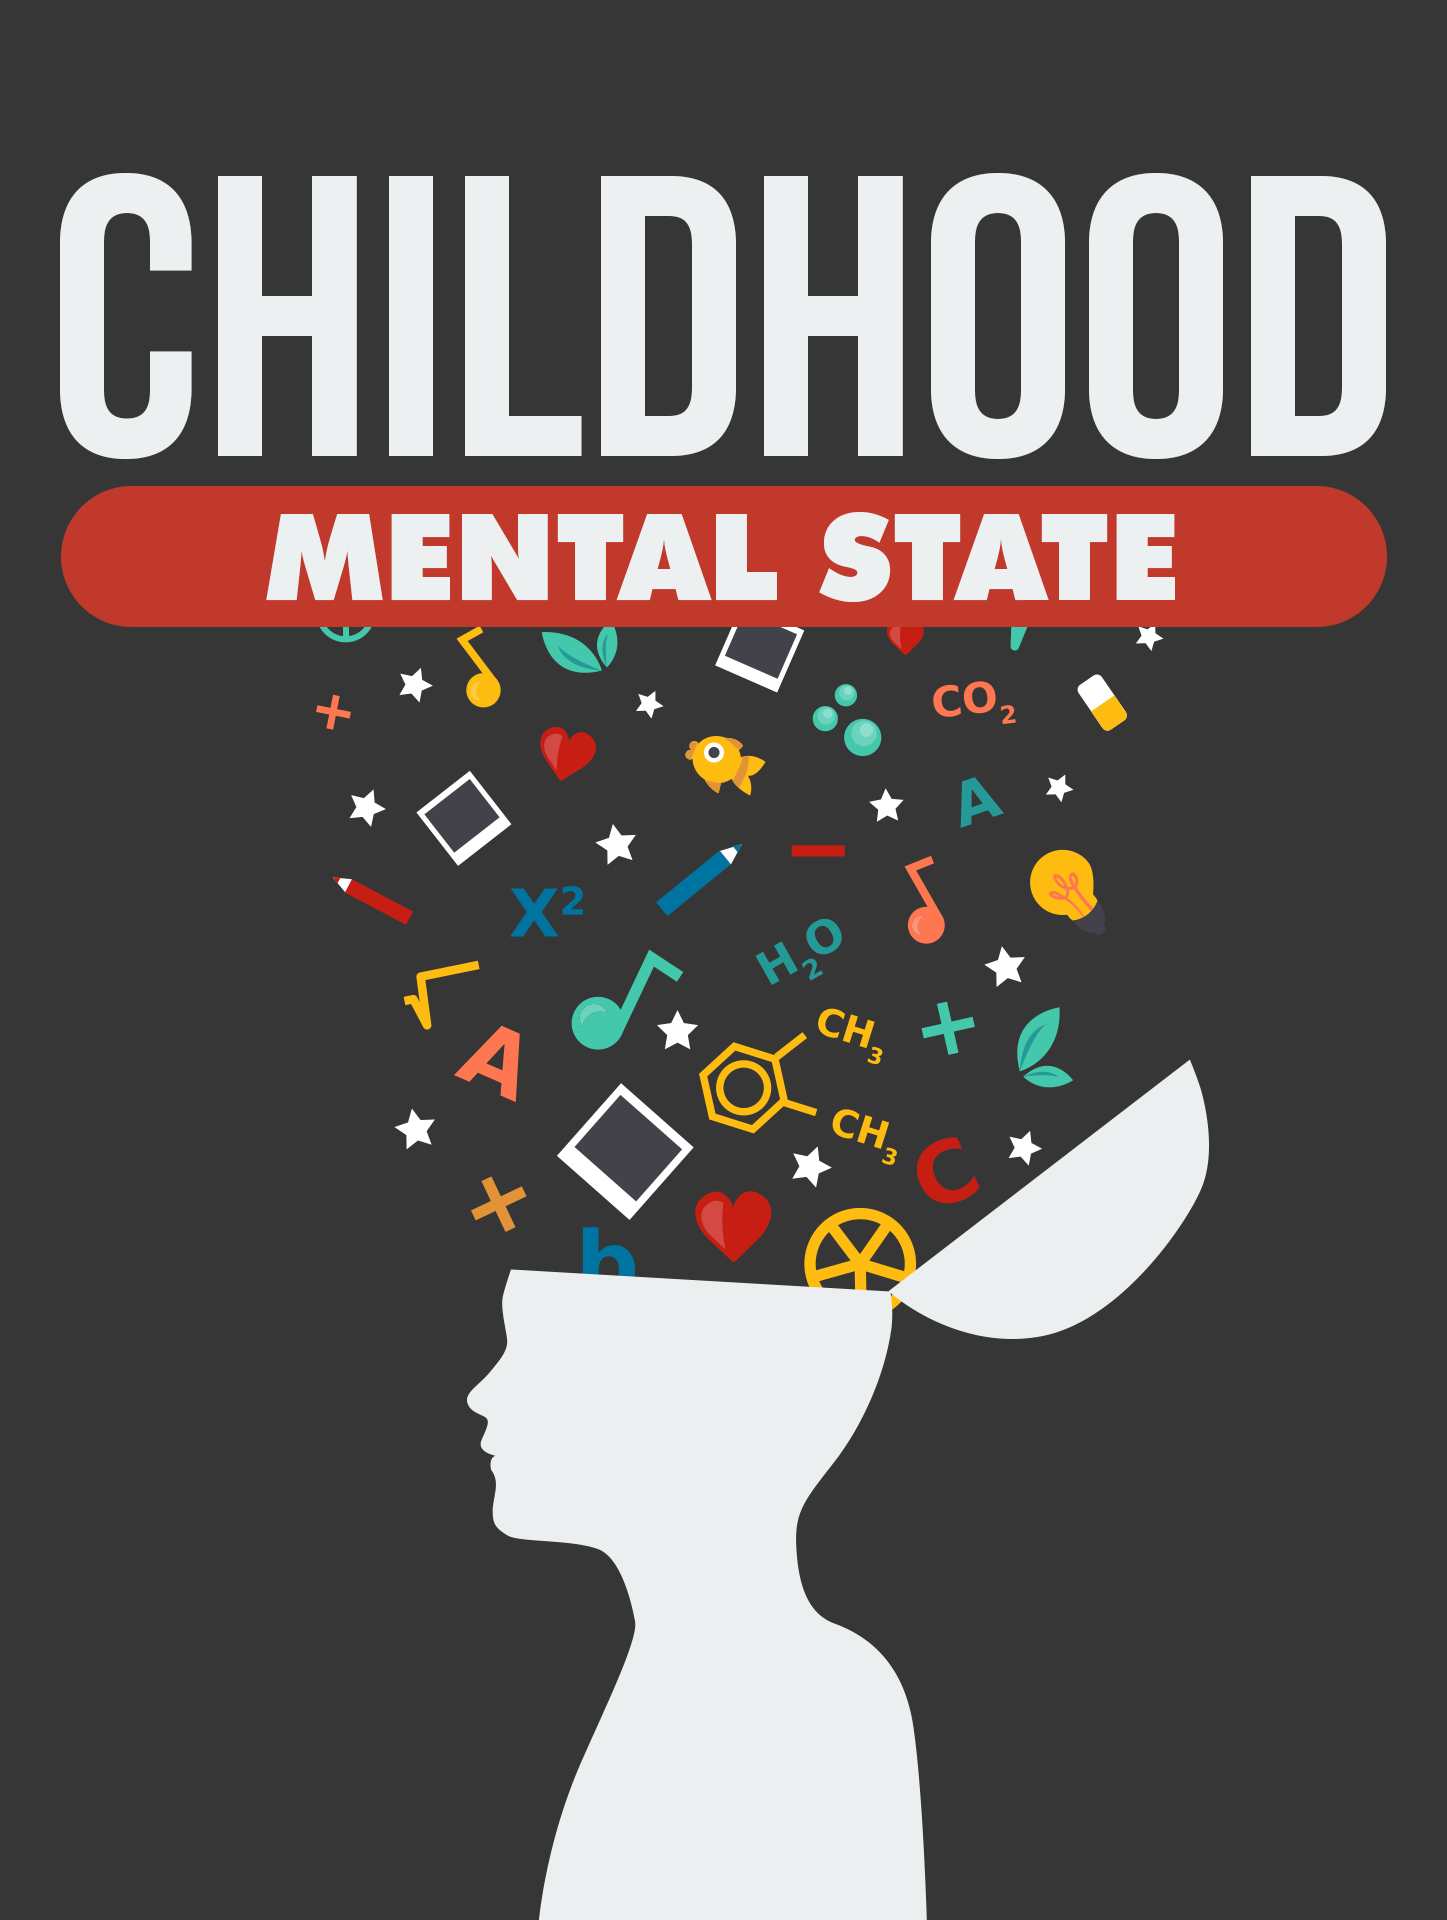 Childhood-Mental-State